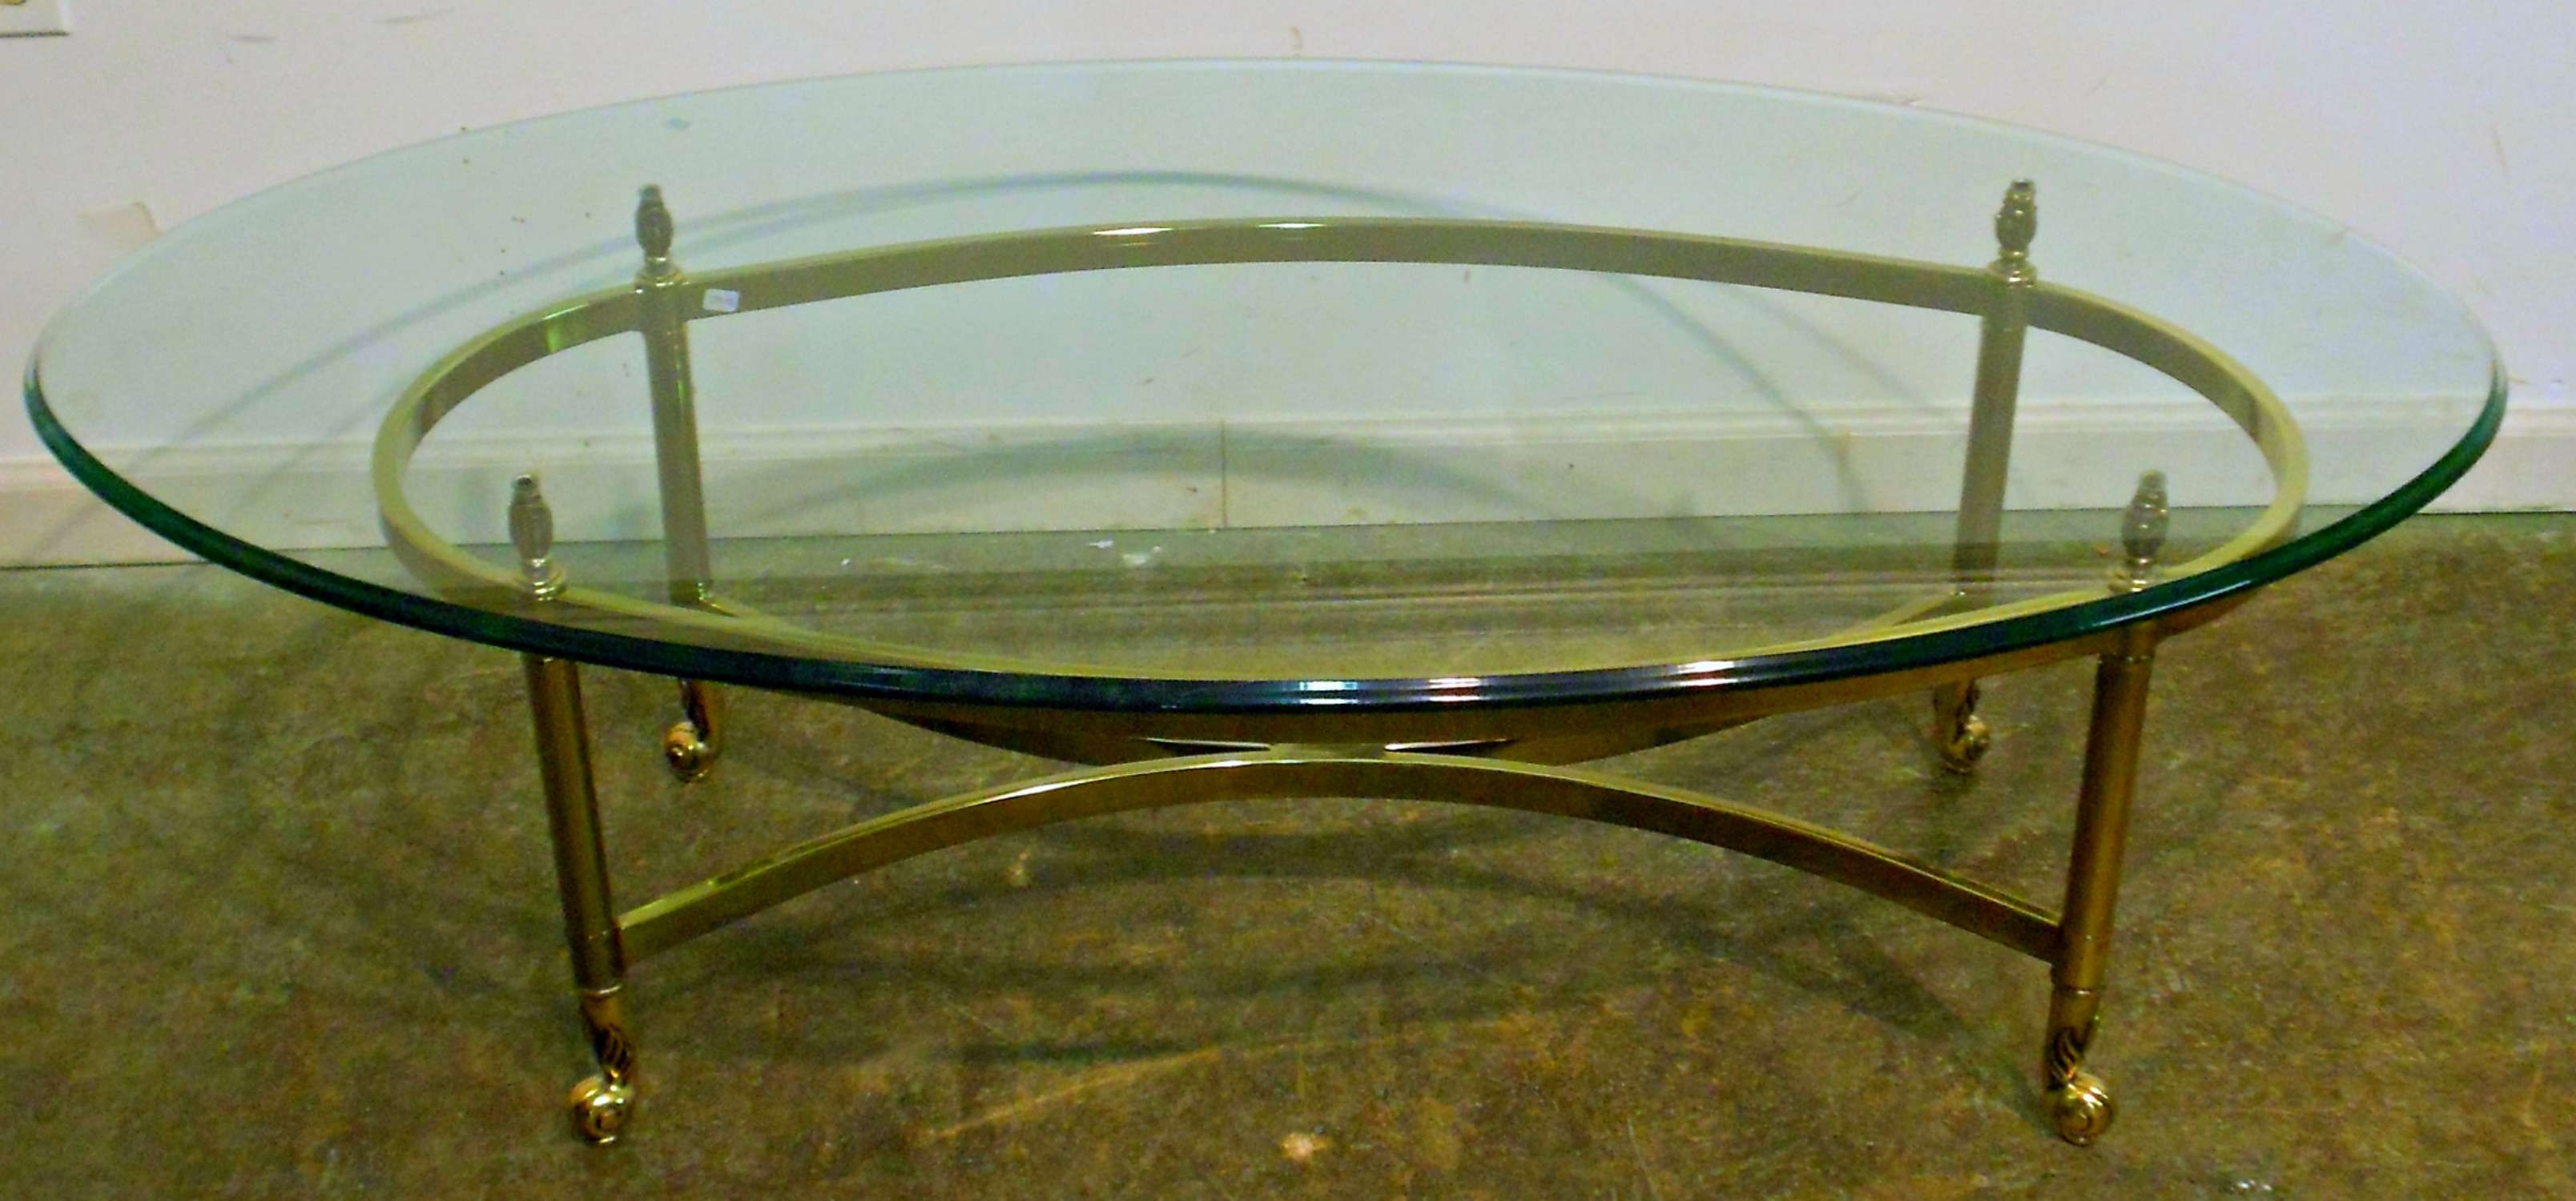 Oval Glass Top Coffee Table With Brass Frame And Wheels For Regarding Well Liked Oval Glass And Wood Coffee Tables (View 15 of 20)